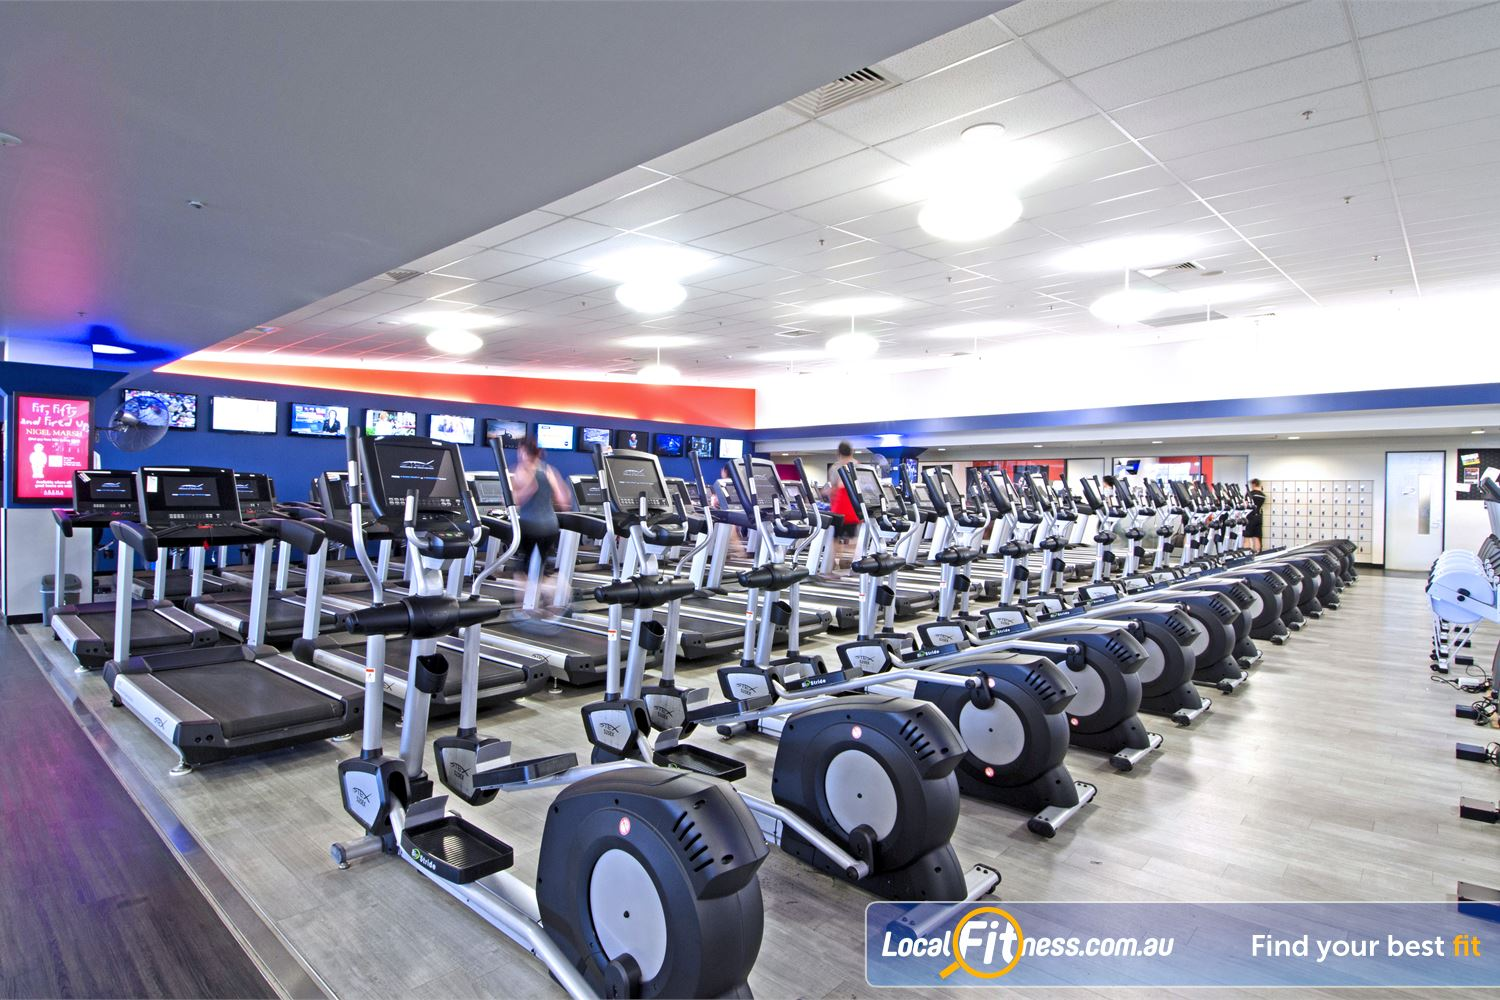 Goodlife Health Clubs Chermside The latest cycle bikes, cross trainers and treadmills from Stex Fitness.